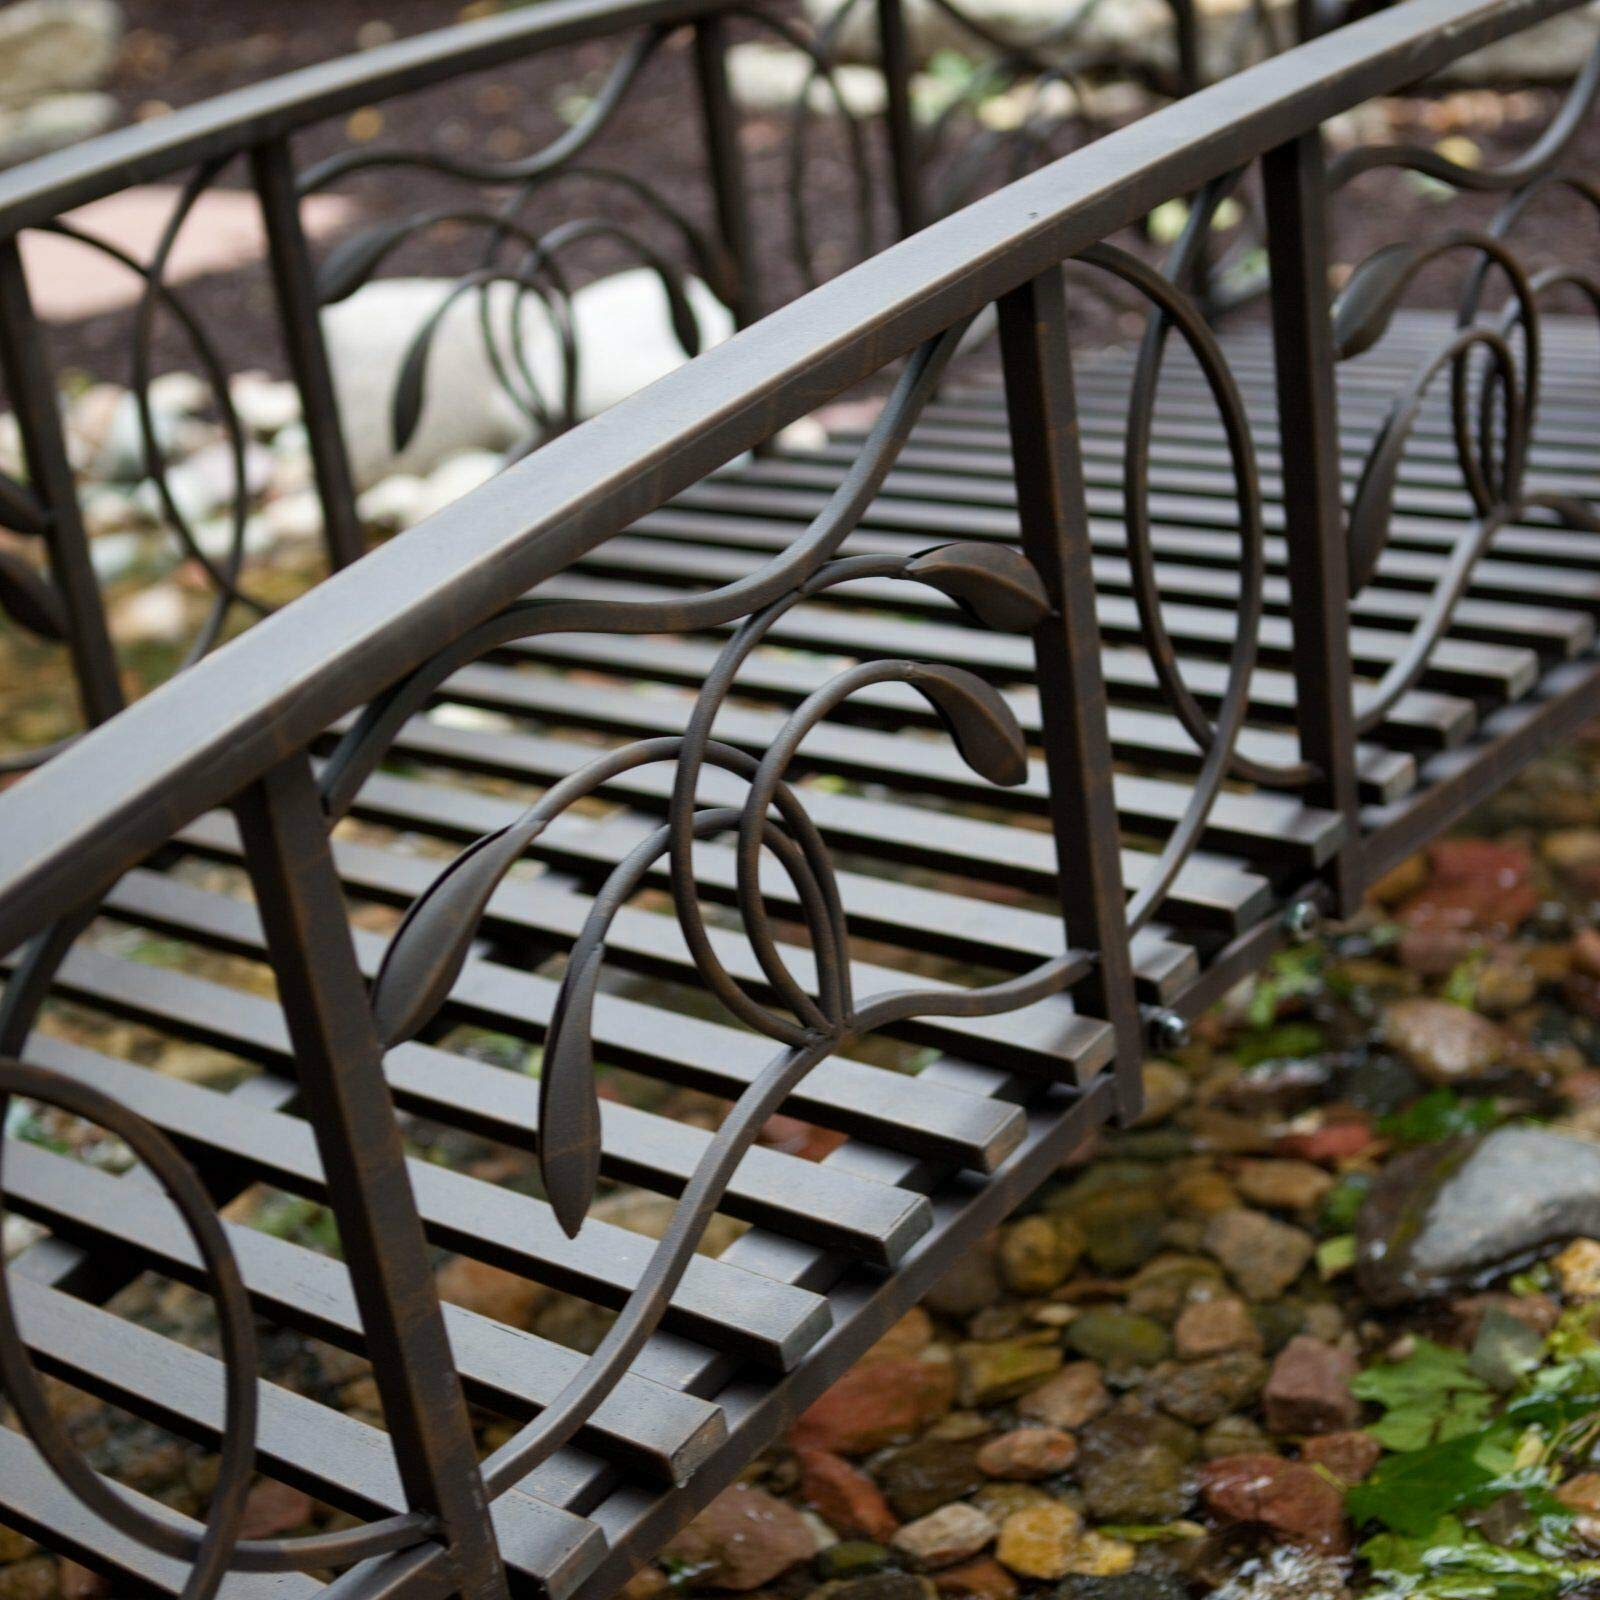 Home Improvements Weathered Black Finish Metal 8 Foot Garden Bridge Outdoor Yard Lawn Landscaping by Home Improvements (Image #2)